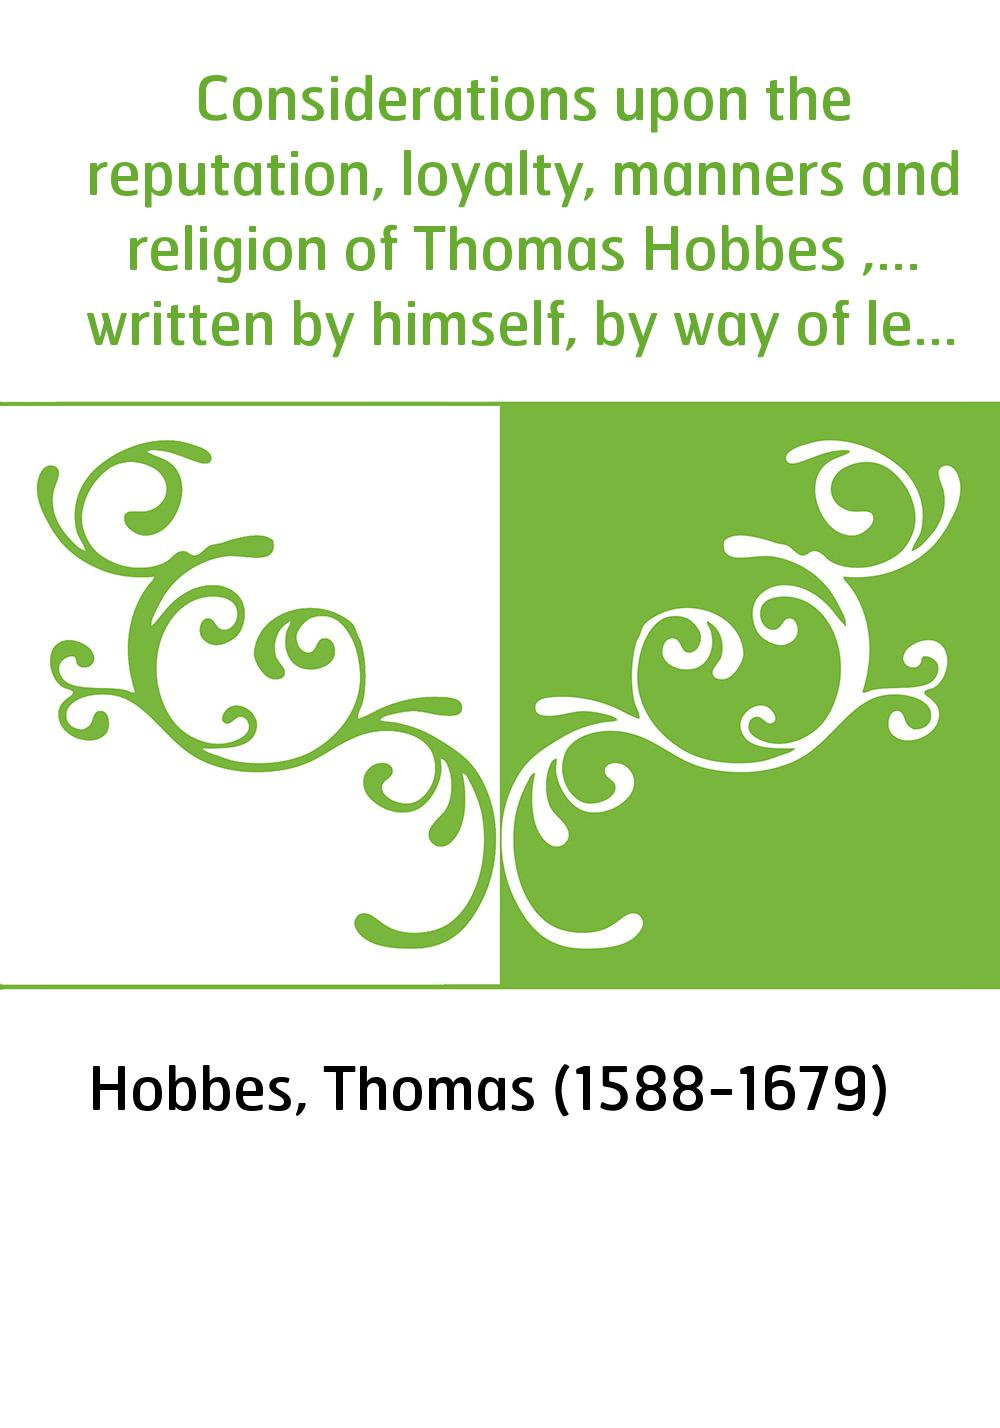 Considerations upon the reputation, loyalty, manners and religion of Thomas Hobbes ,... written by himself, by way of letter to